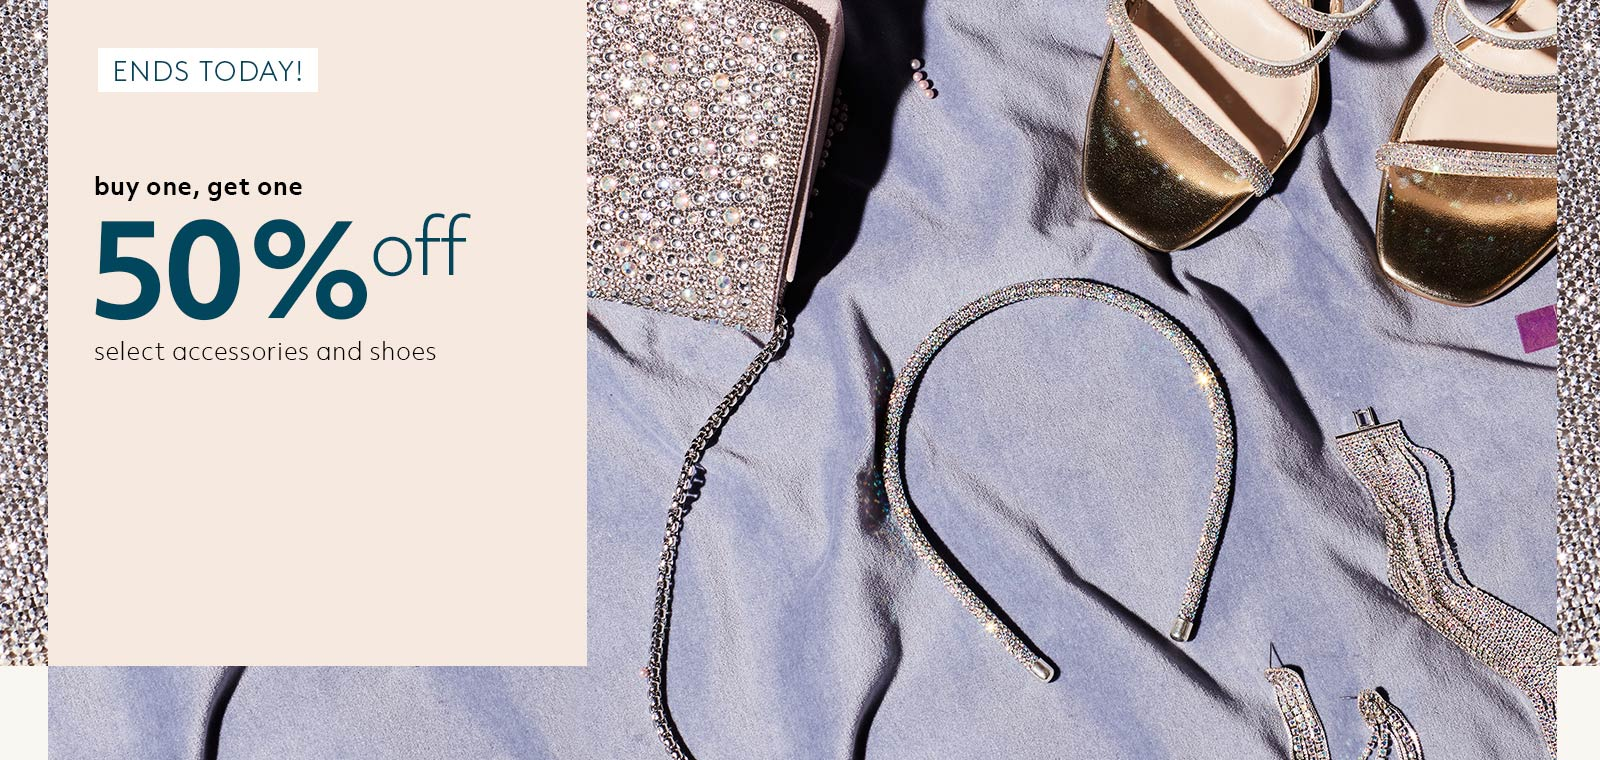 Buy One, Get One - 50% off select accessories and shoes